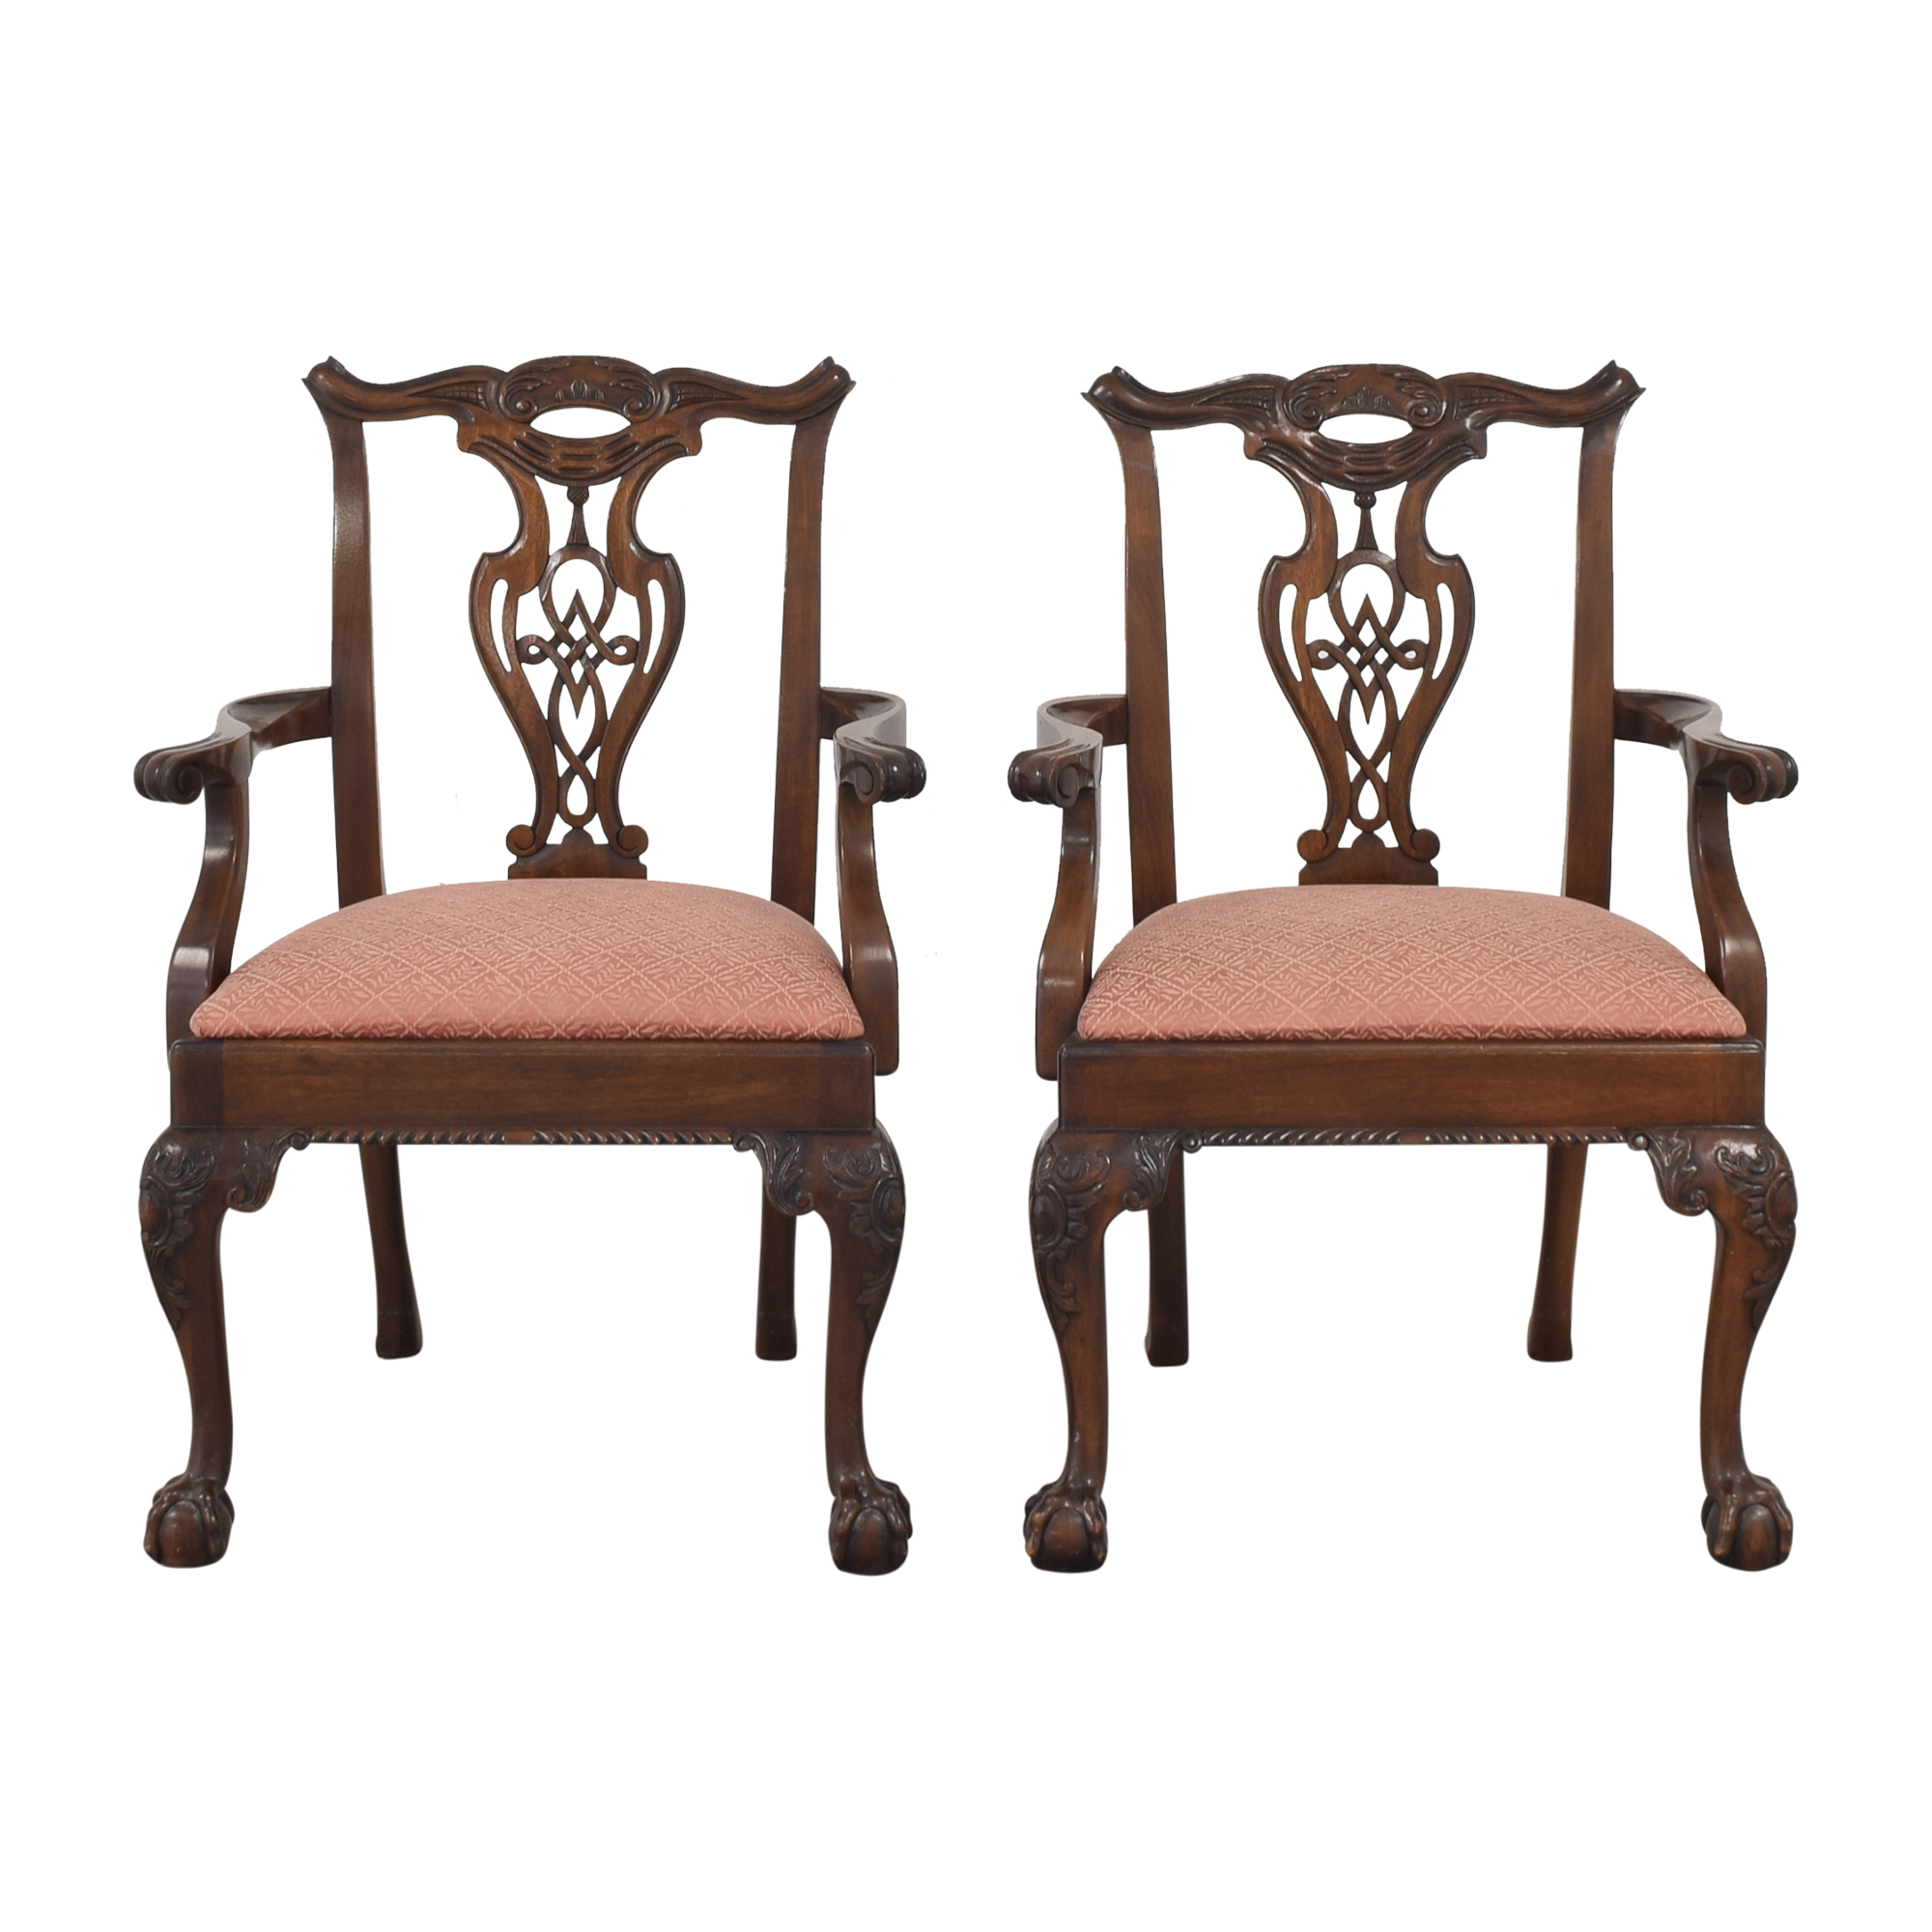 Henredon Furniture Henredon Heirloom Dining Chairs